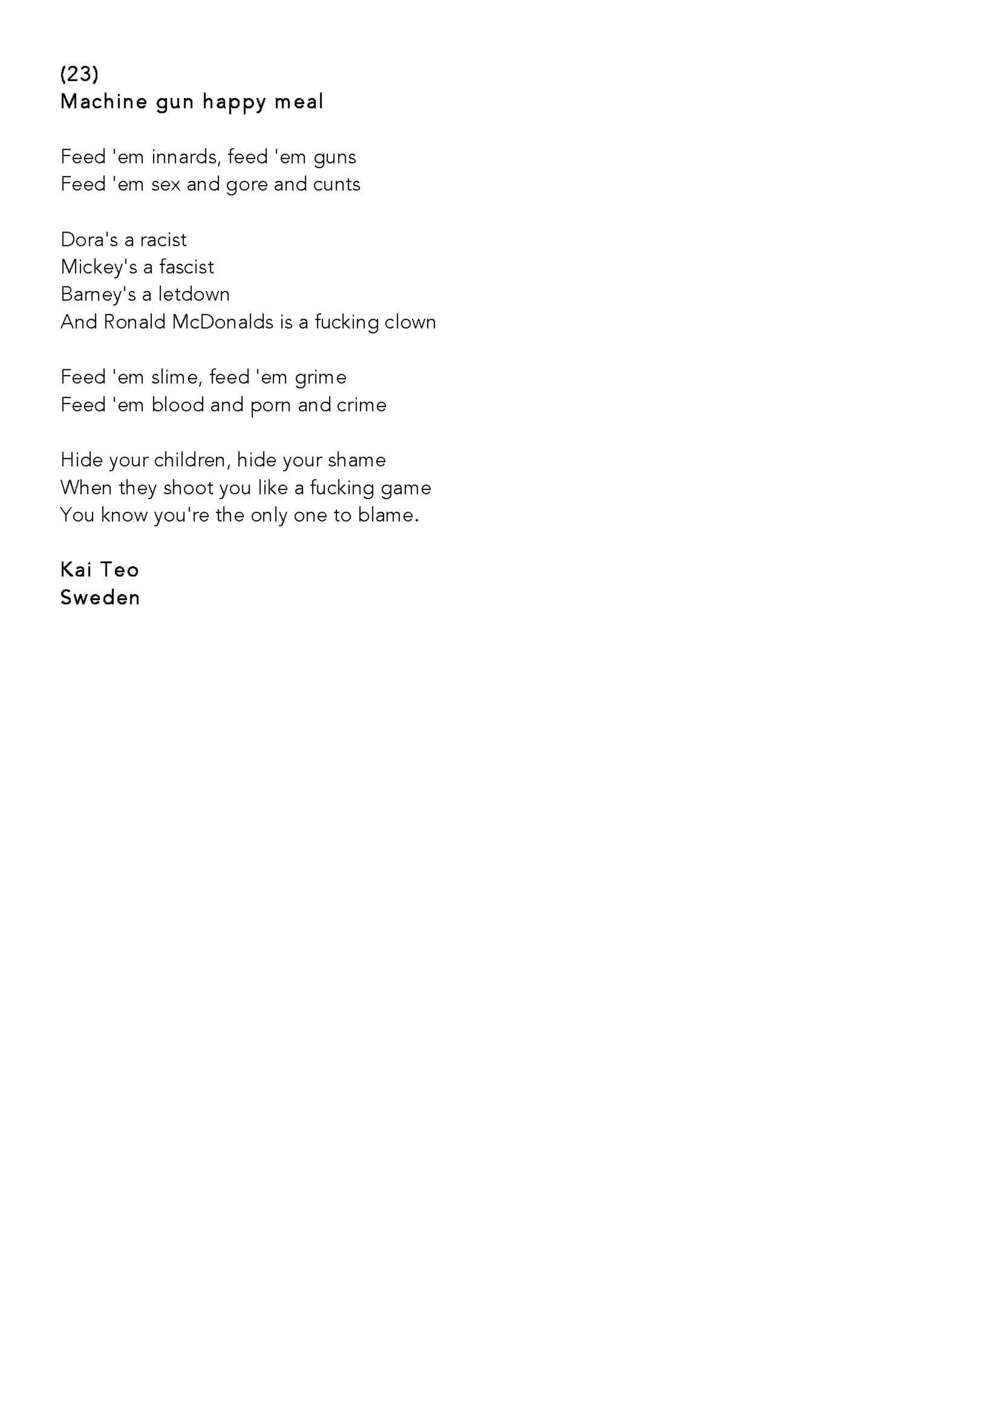 Poetry Collection - Everyone can Poetry _ For 19 April 2014_Page_24.jpg